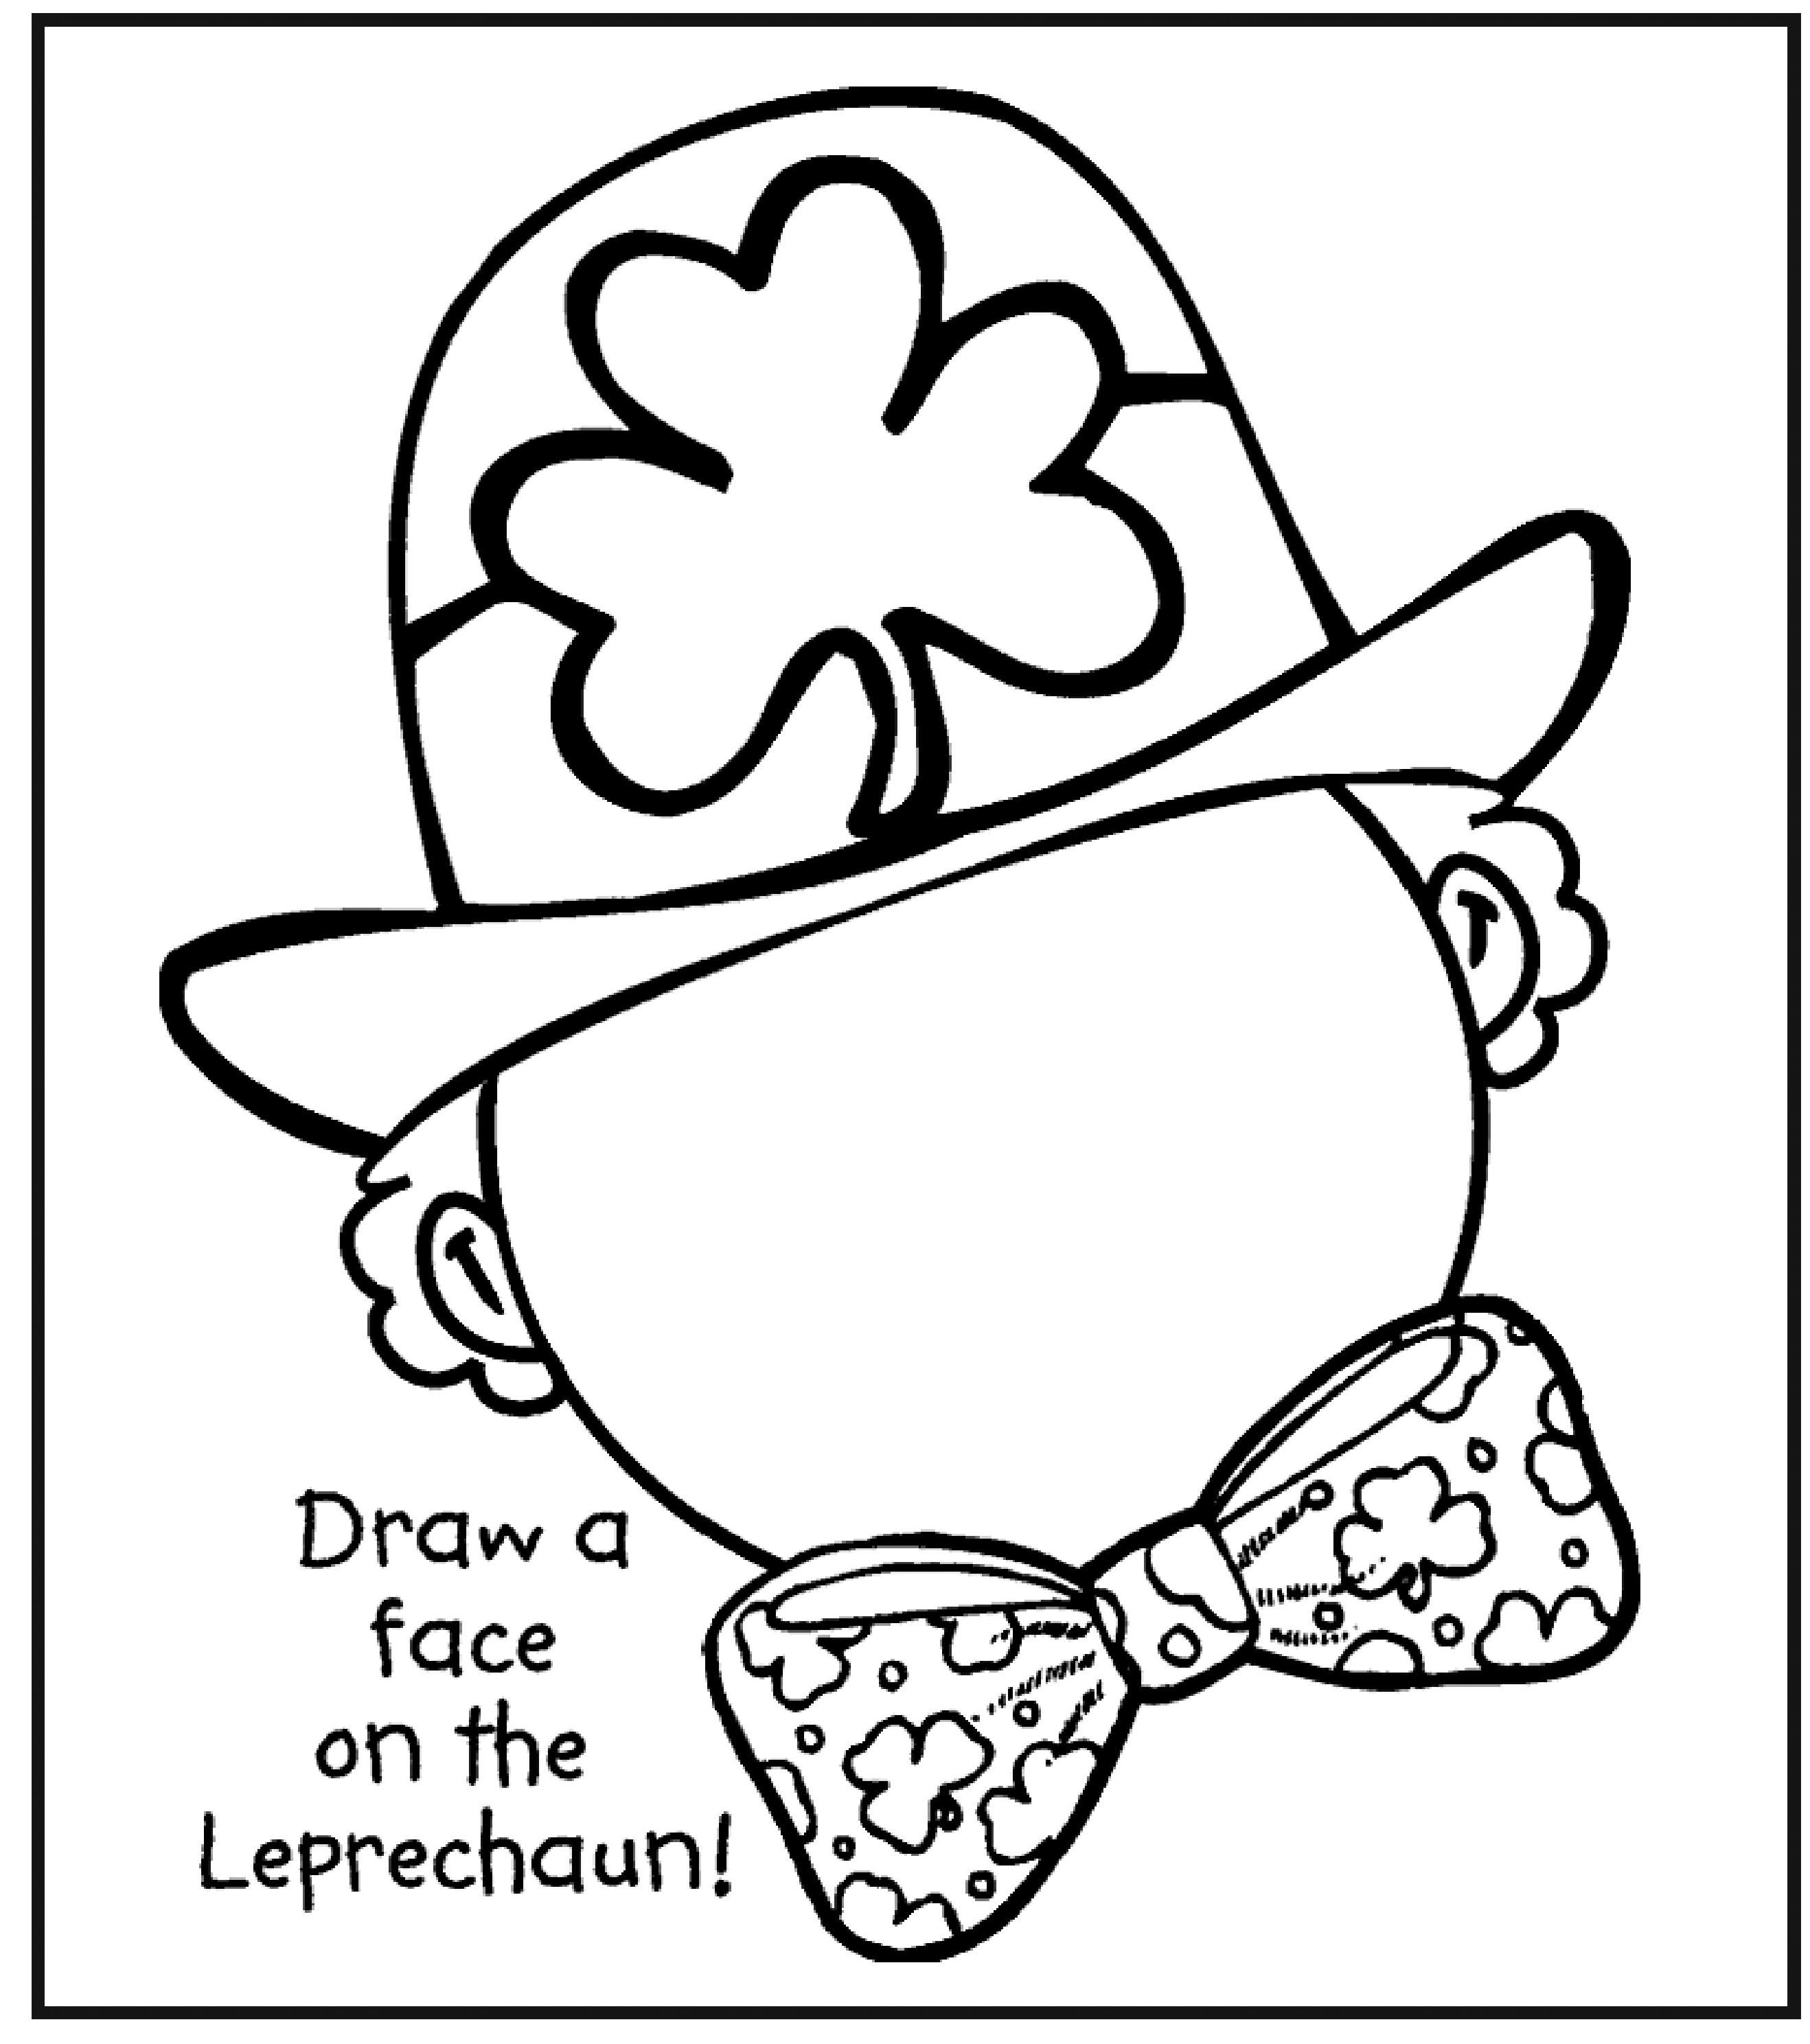 Coloring Pages St Pattys Day Coloring Pages 1000 images about st patricks day on pinterest leprechaun animal coloring pages and spelling